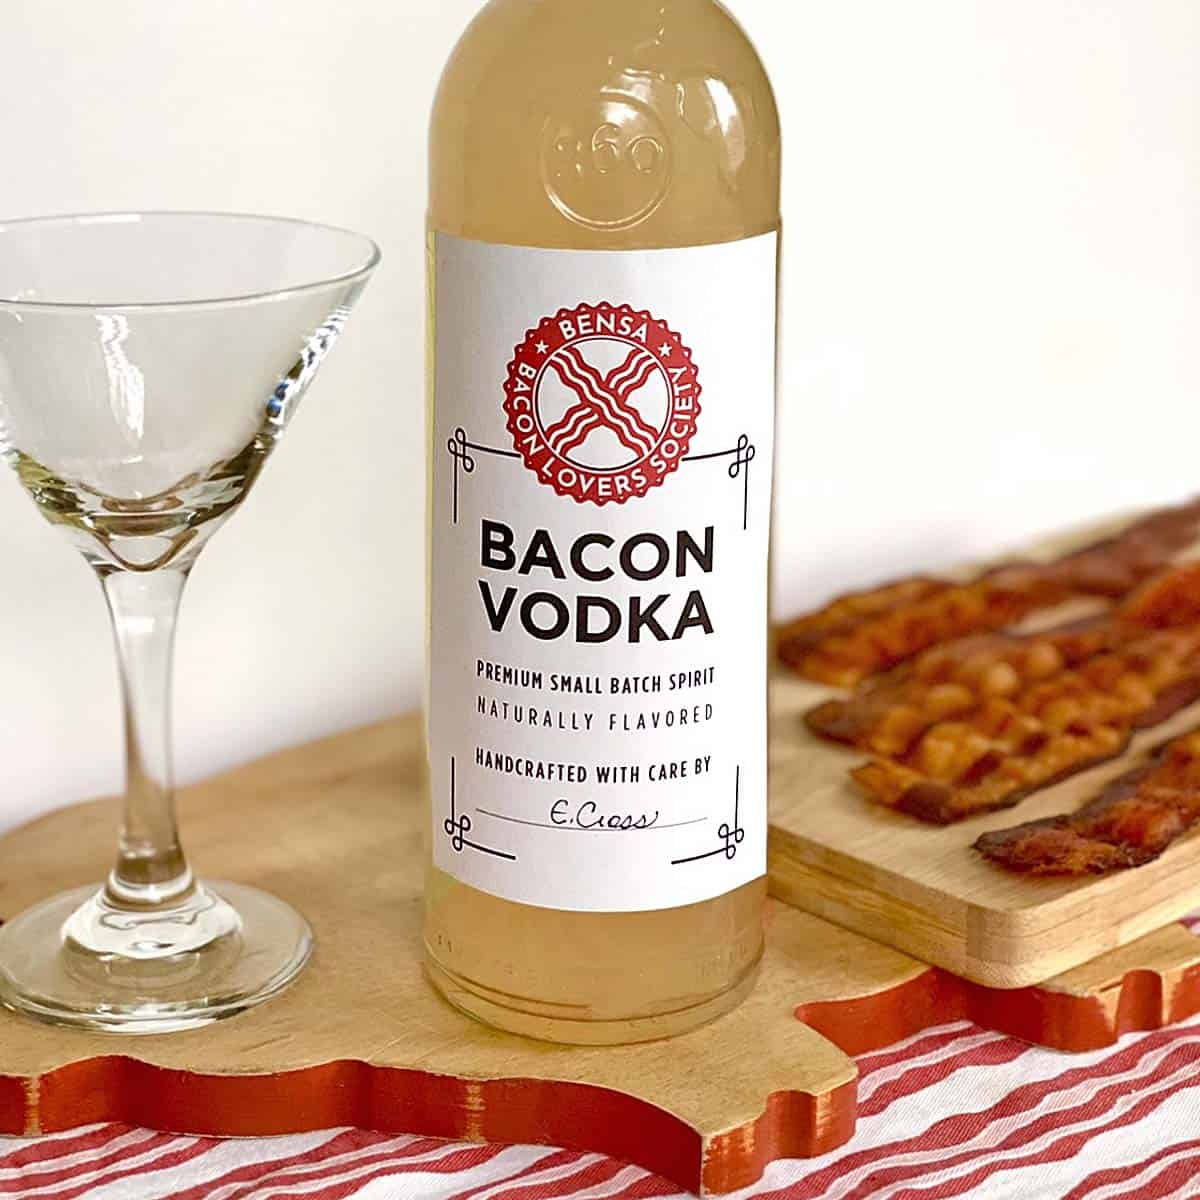 bottle of bacon vodka on a wooden cutting board, an empty martini glass, and four strips of crisply cooked bacon